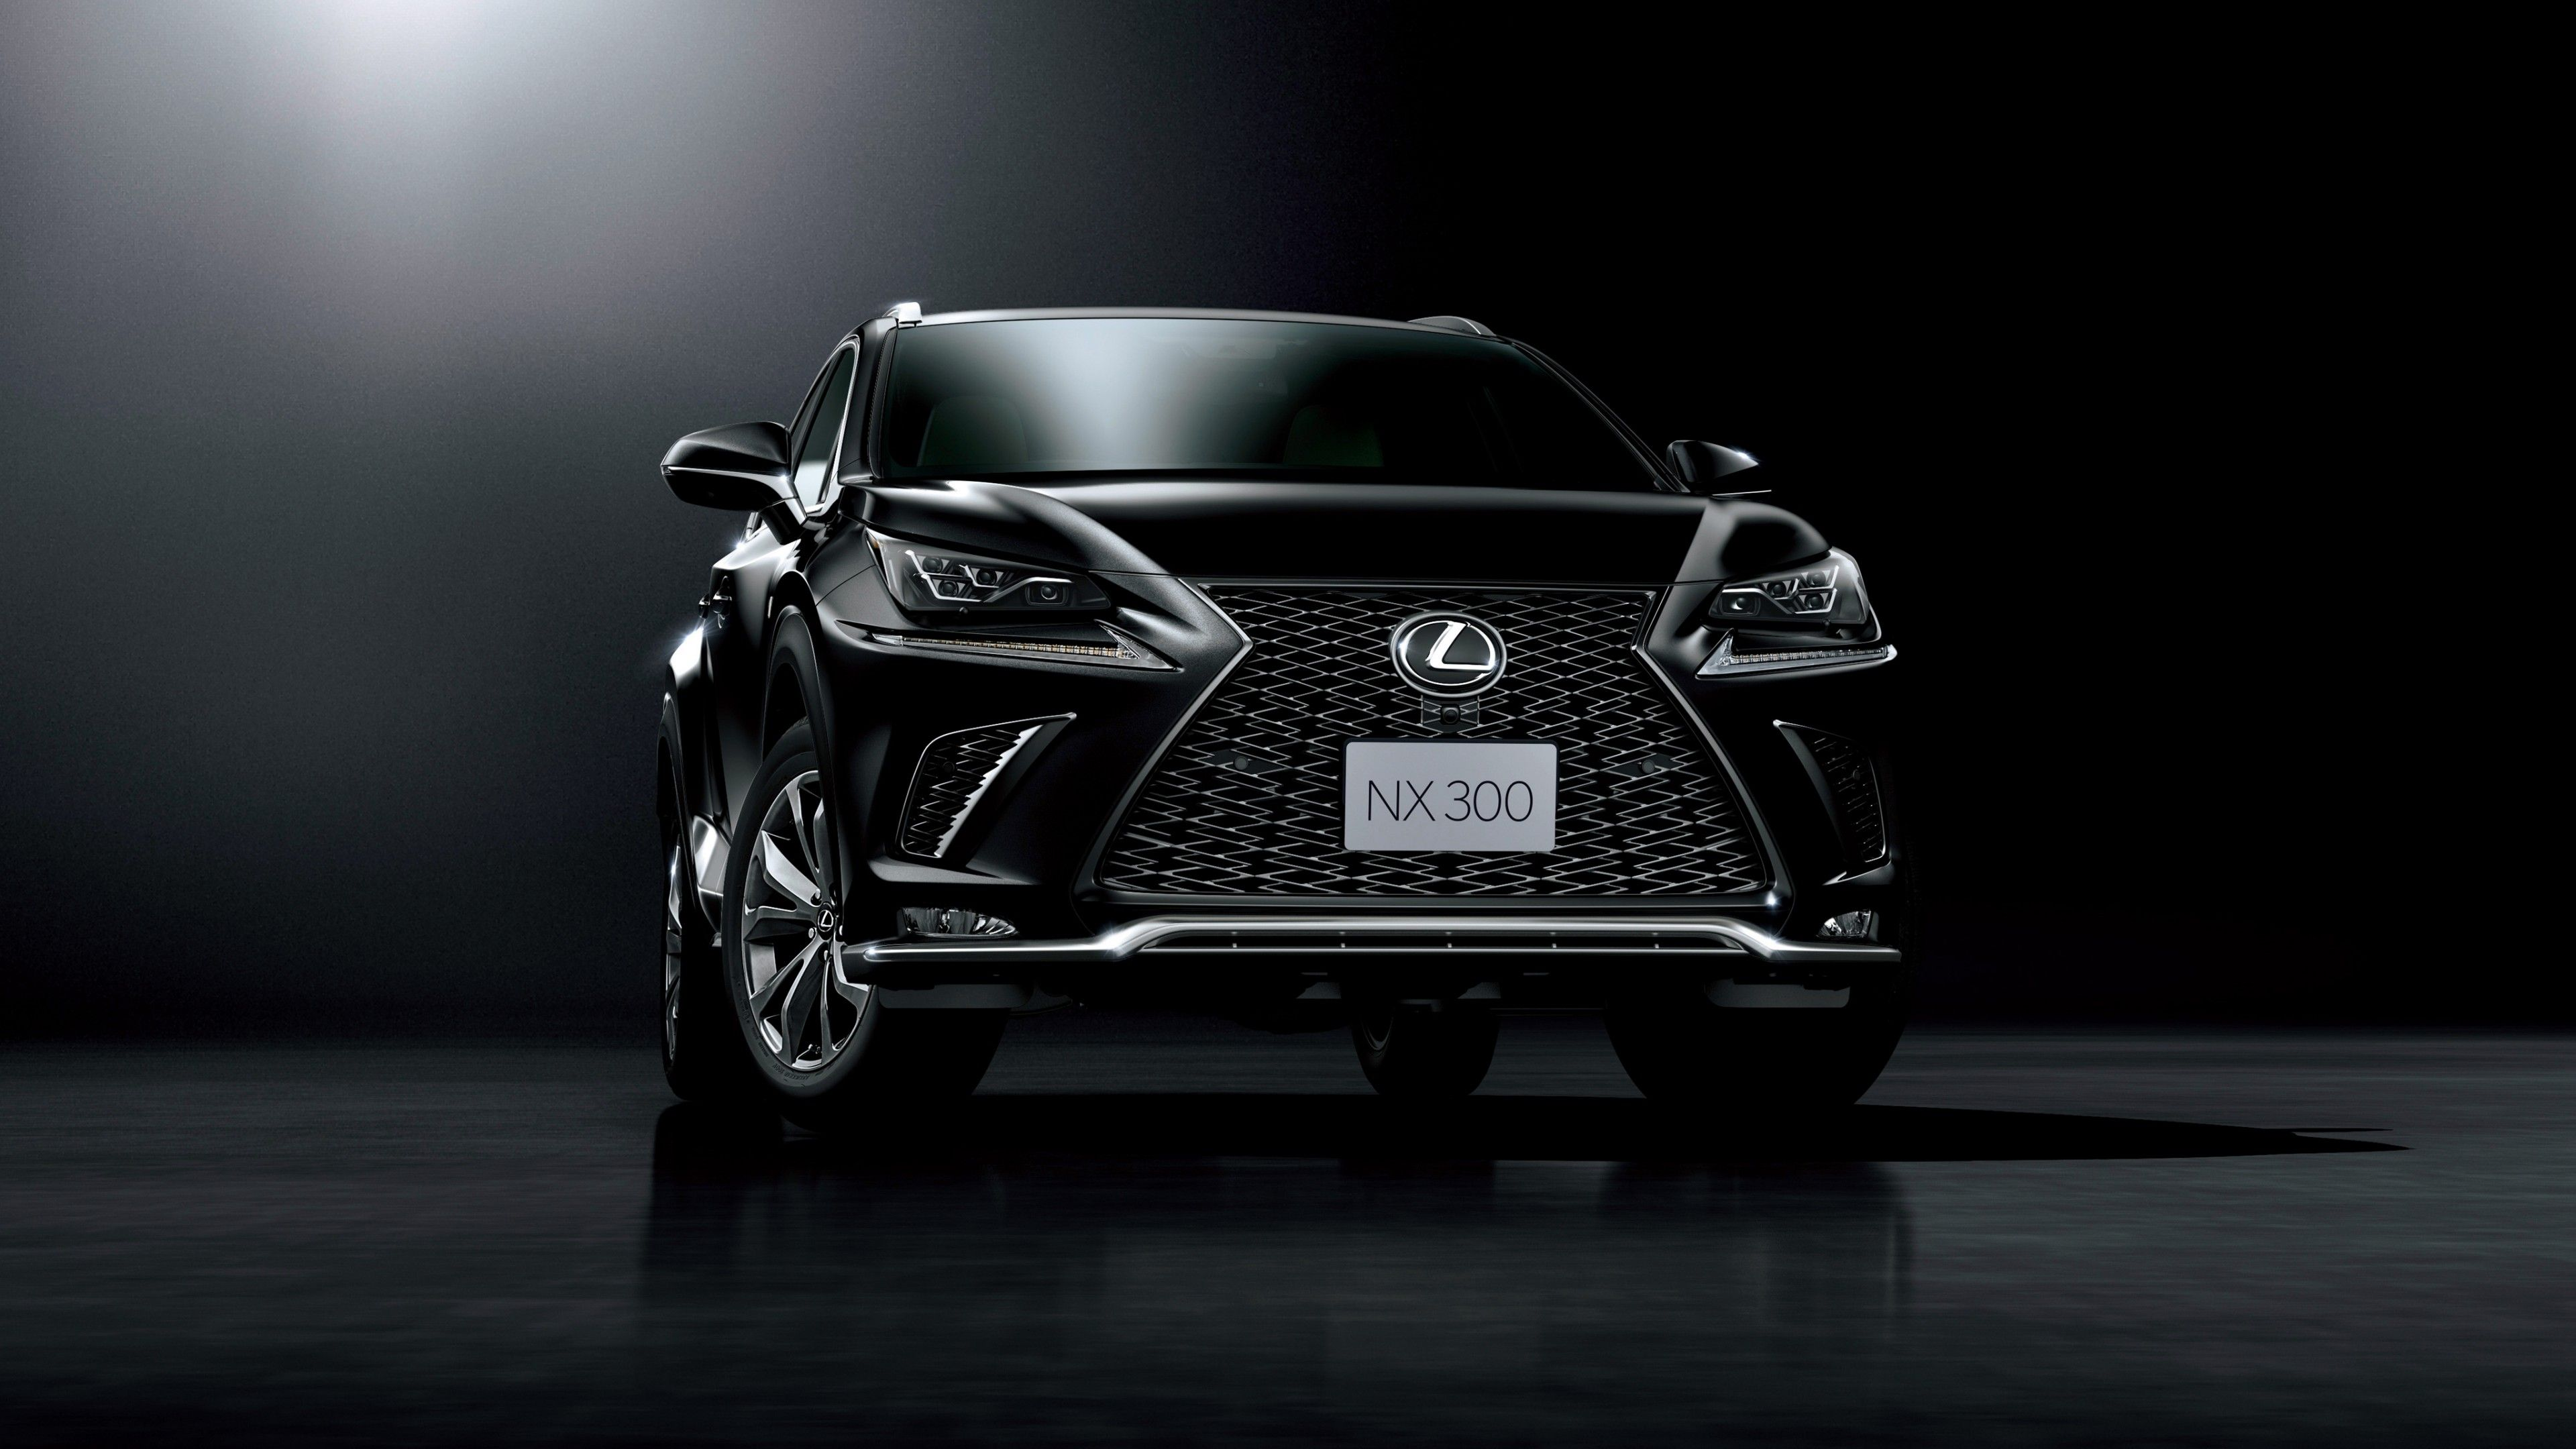 Stealth Mode Really Works For This Stunning 2018 Lexus Nx300